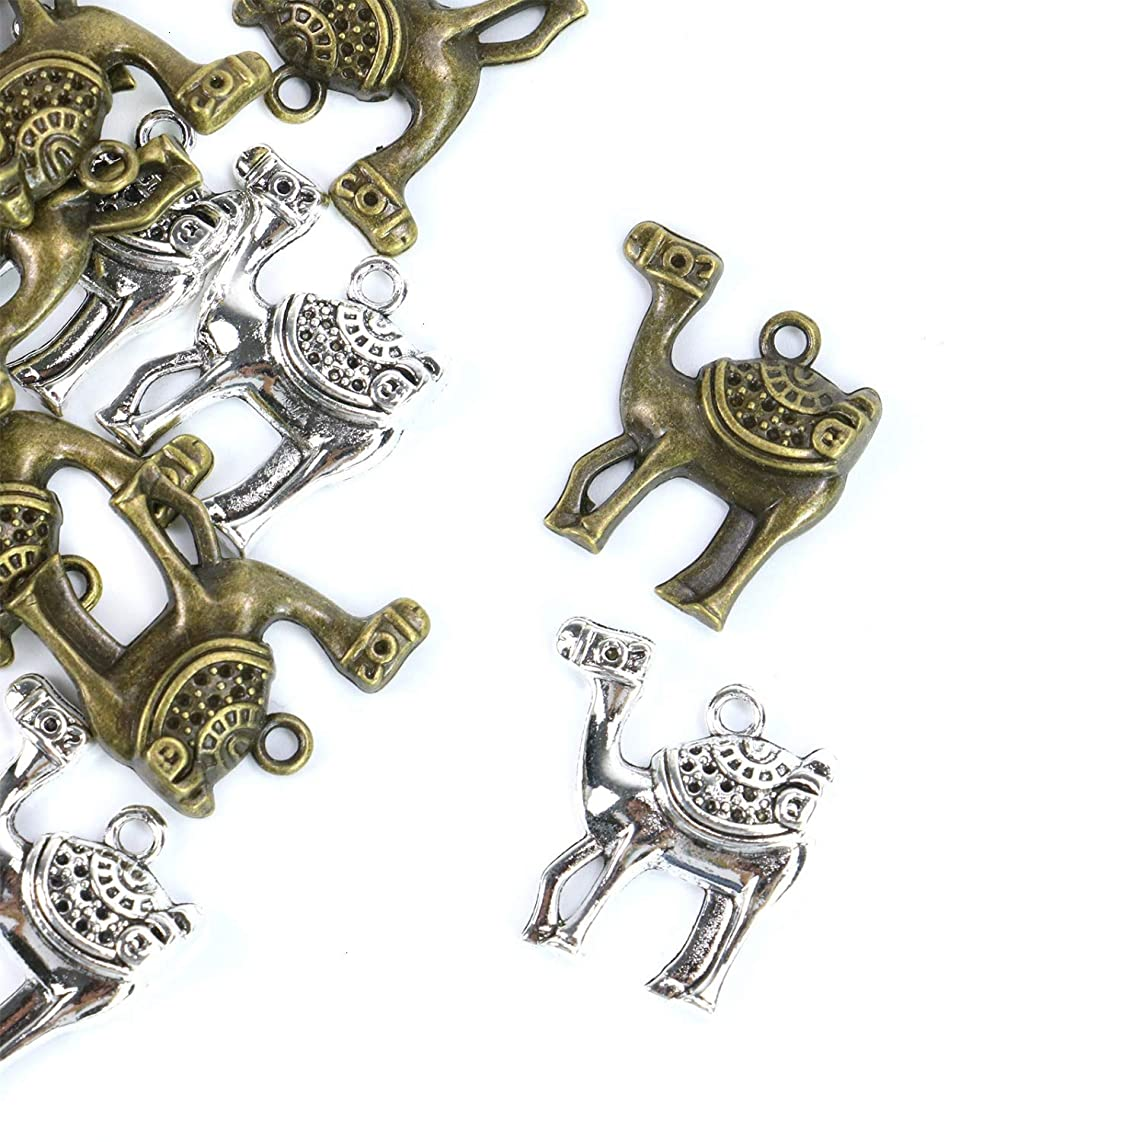 Monrocco 30Pcs 2 Colors 24x24mm Camel Charms Pendants Alloy DIY Jewelry Findings for Jewelry Making and Crafting